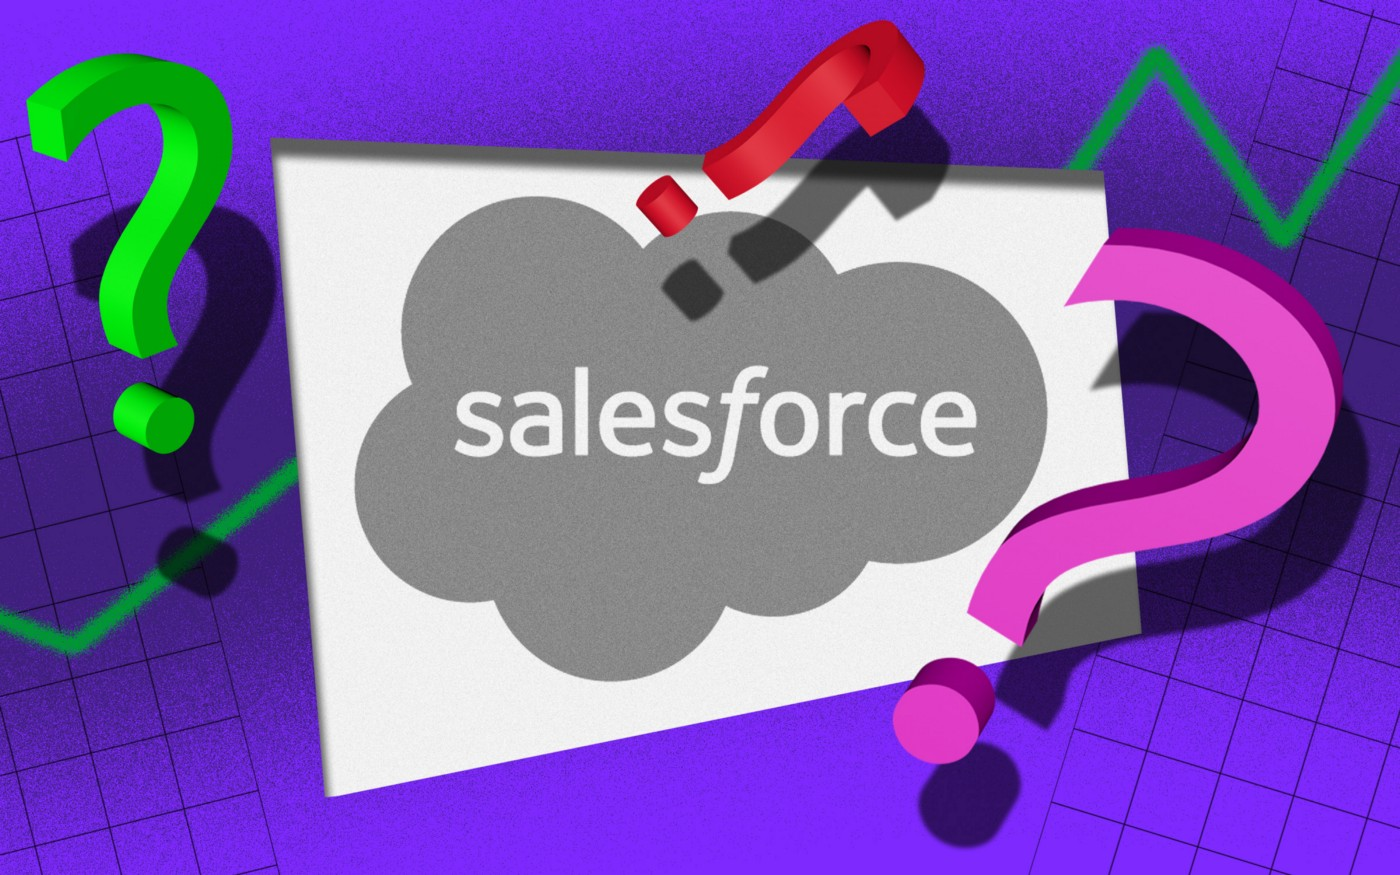 Salesforce logo with question marks surrounding it